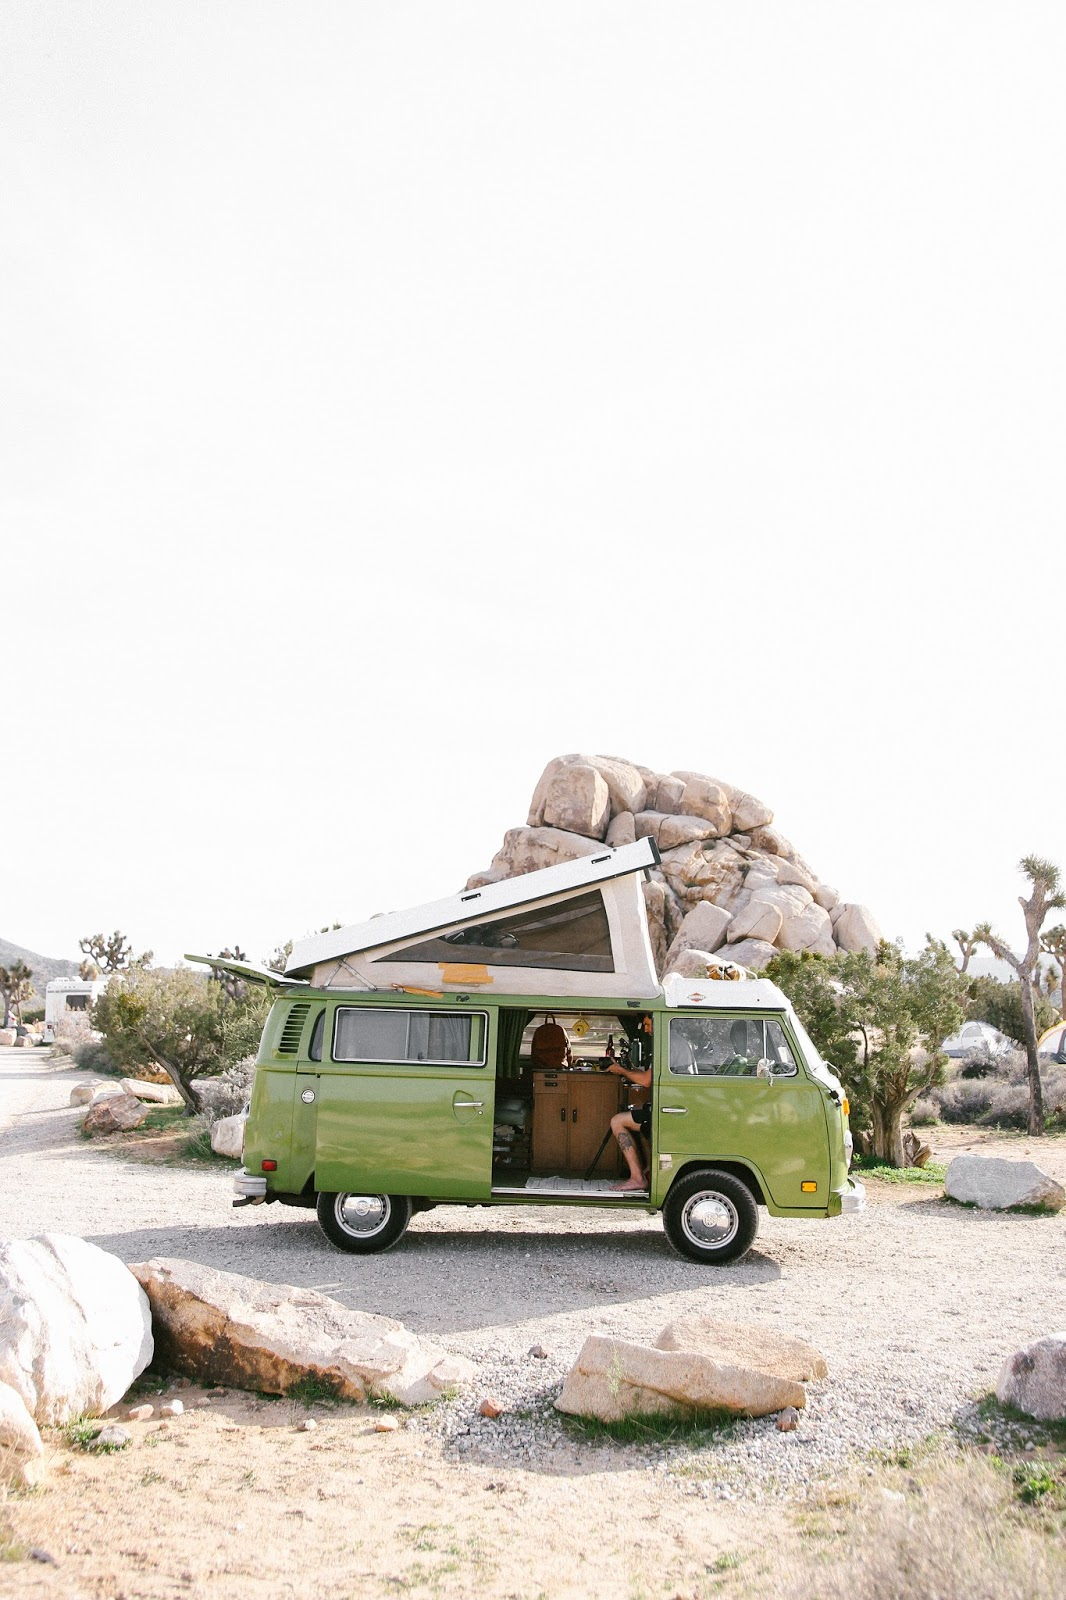 VW westfalia van at joshua tree, VW at joshua tree, Renting a VW Westfalia Van